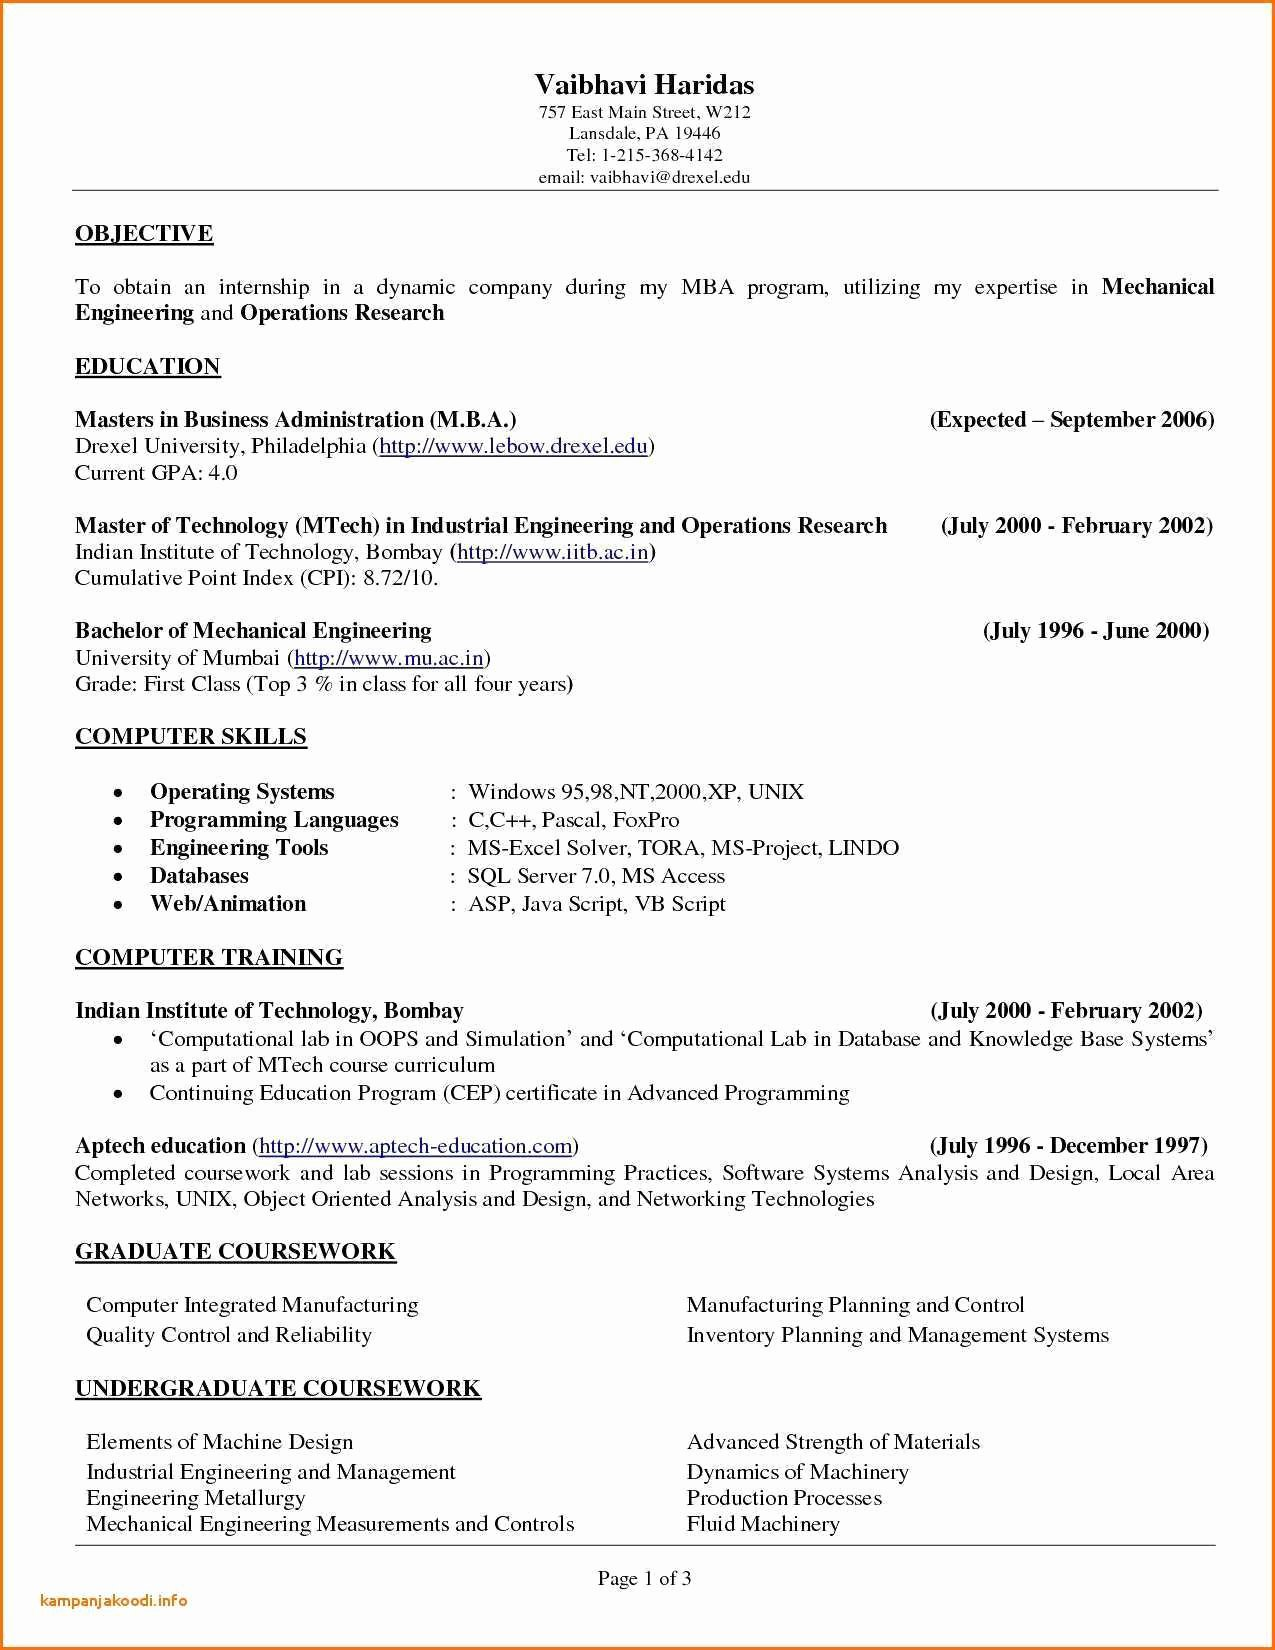 Resume Mission Statement Resume Mission Statement Examples